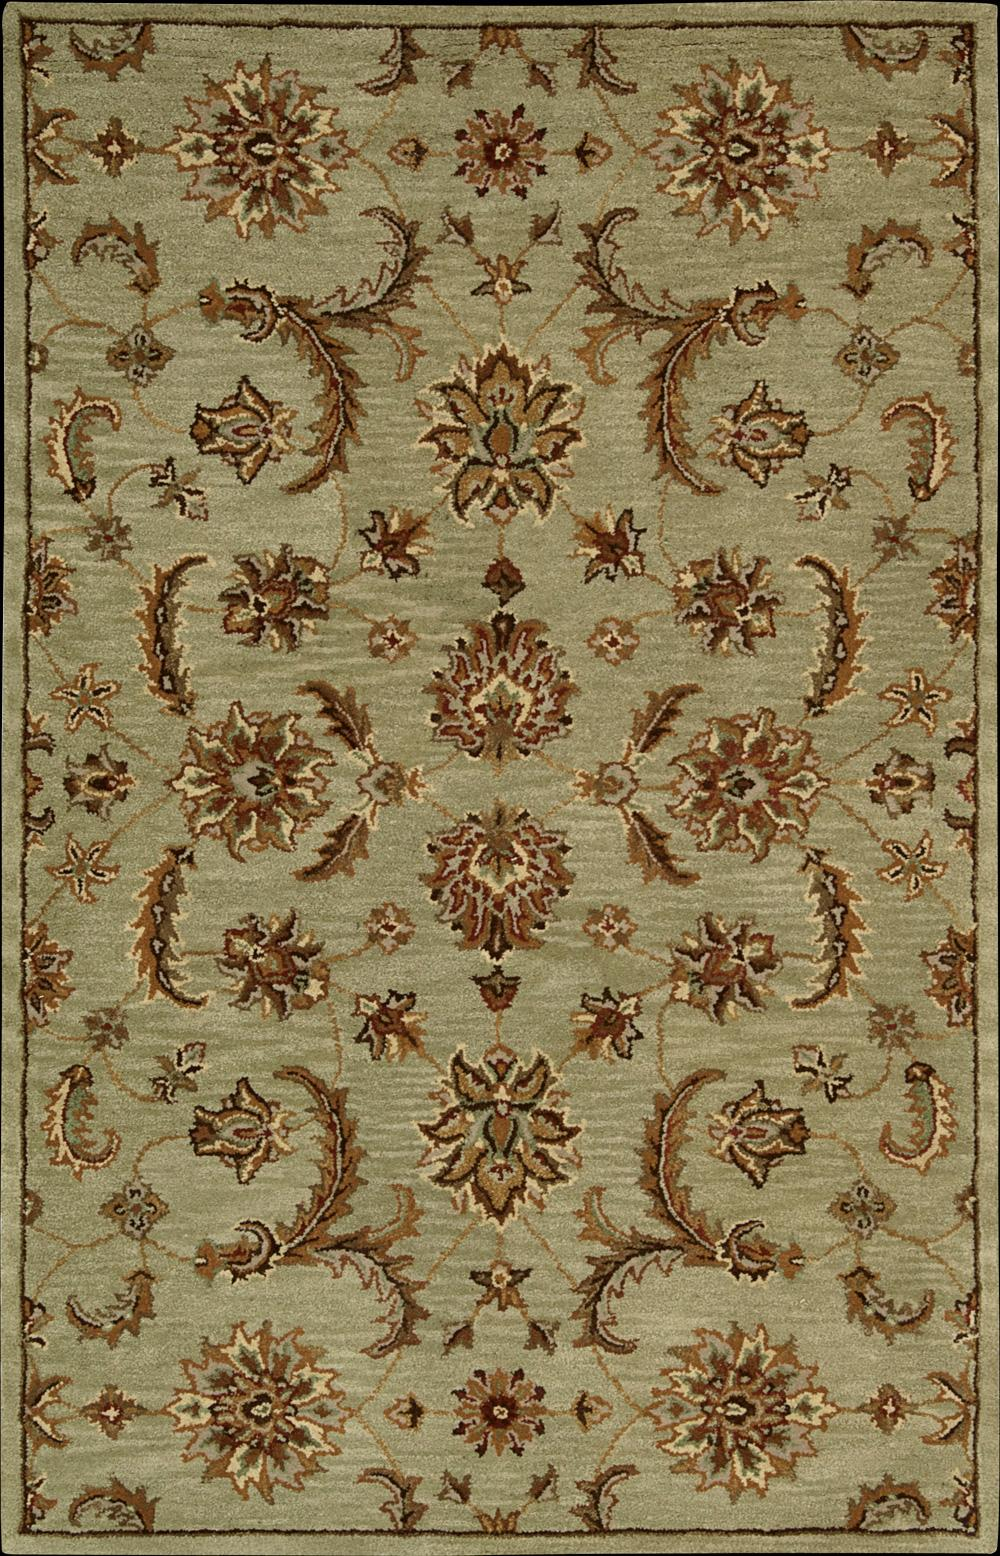 Nourison India House Area Rug 5' x 8' - Item Number: 10293